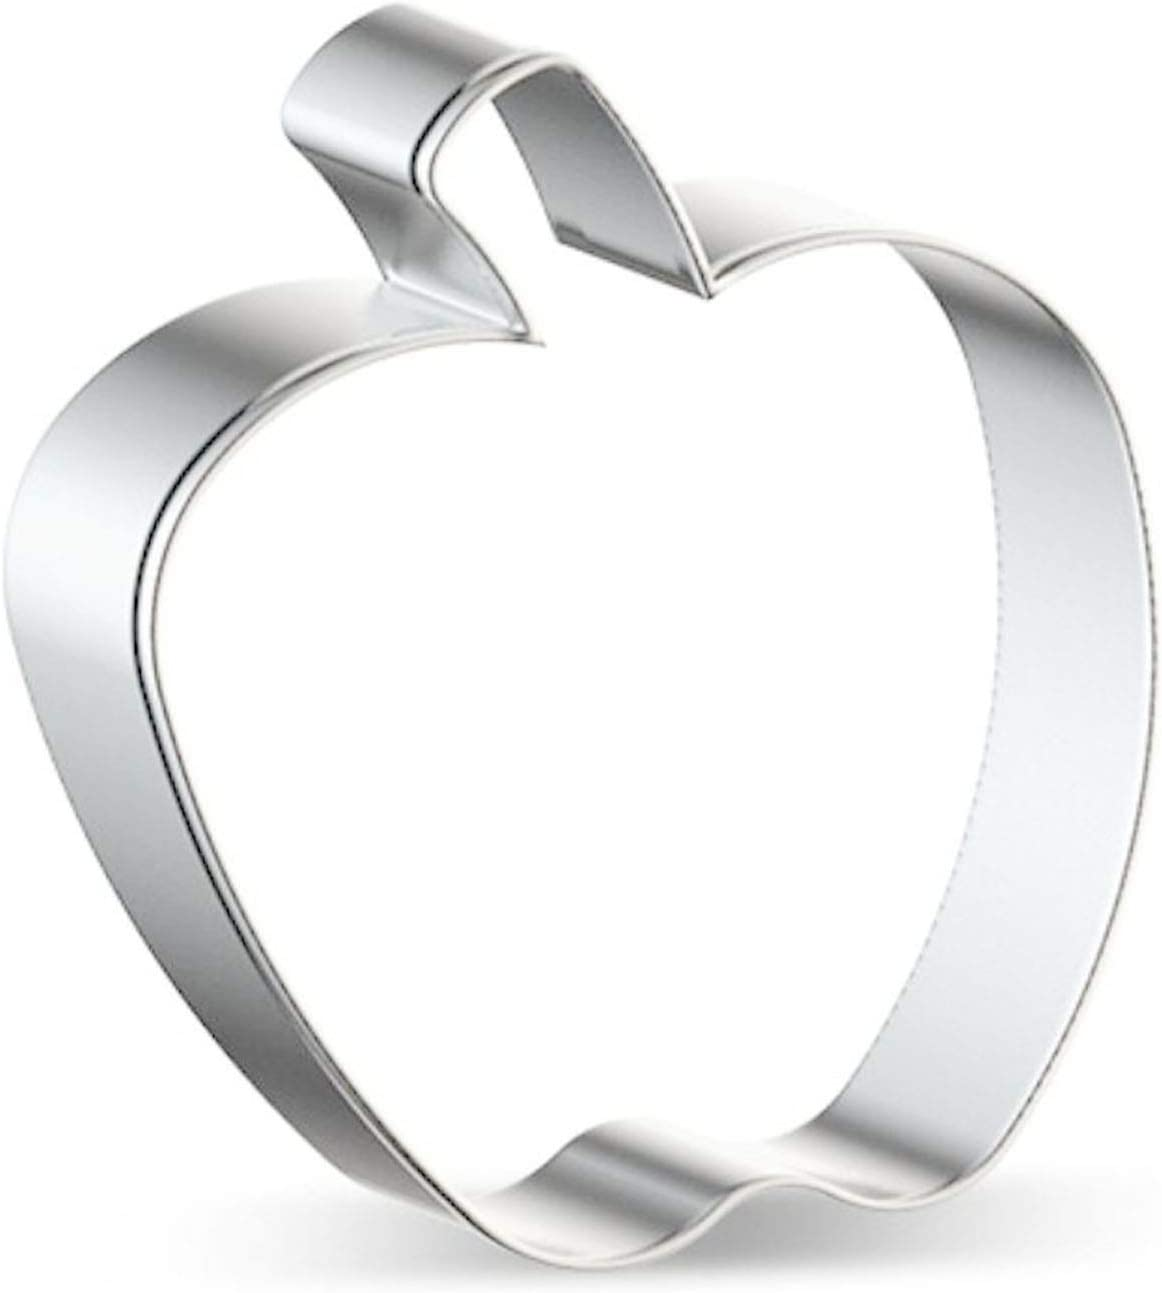 WJSYSHOP Mini Apple Fruit Cookie Cutter - A Small Size